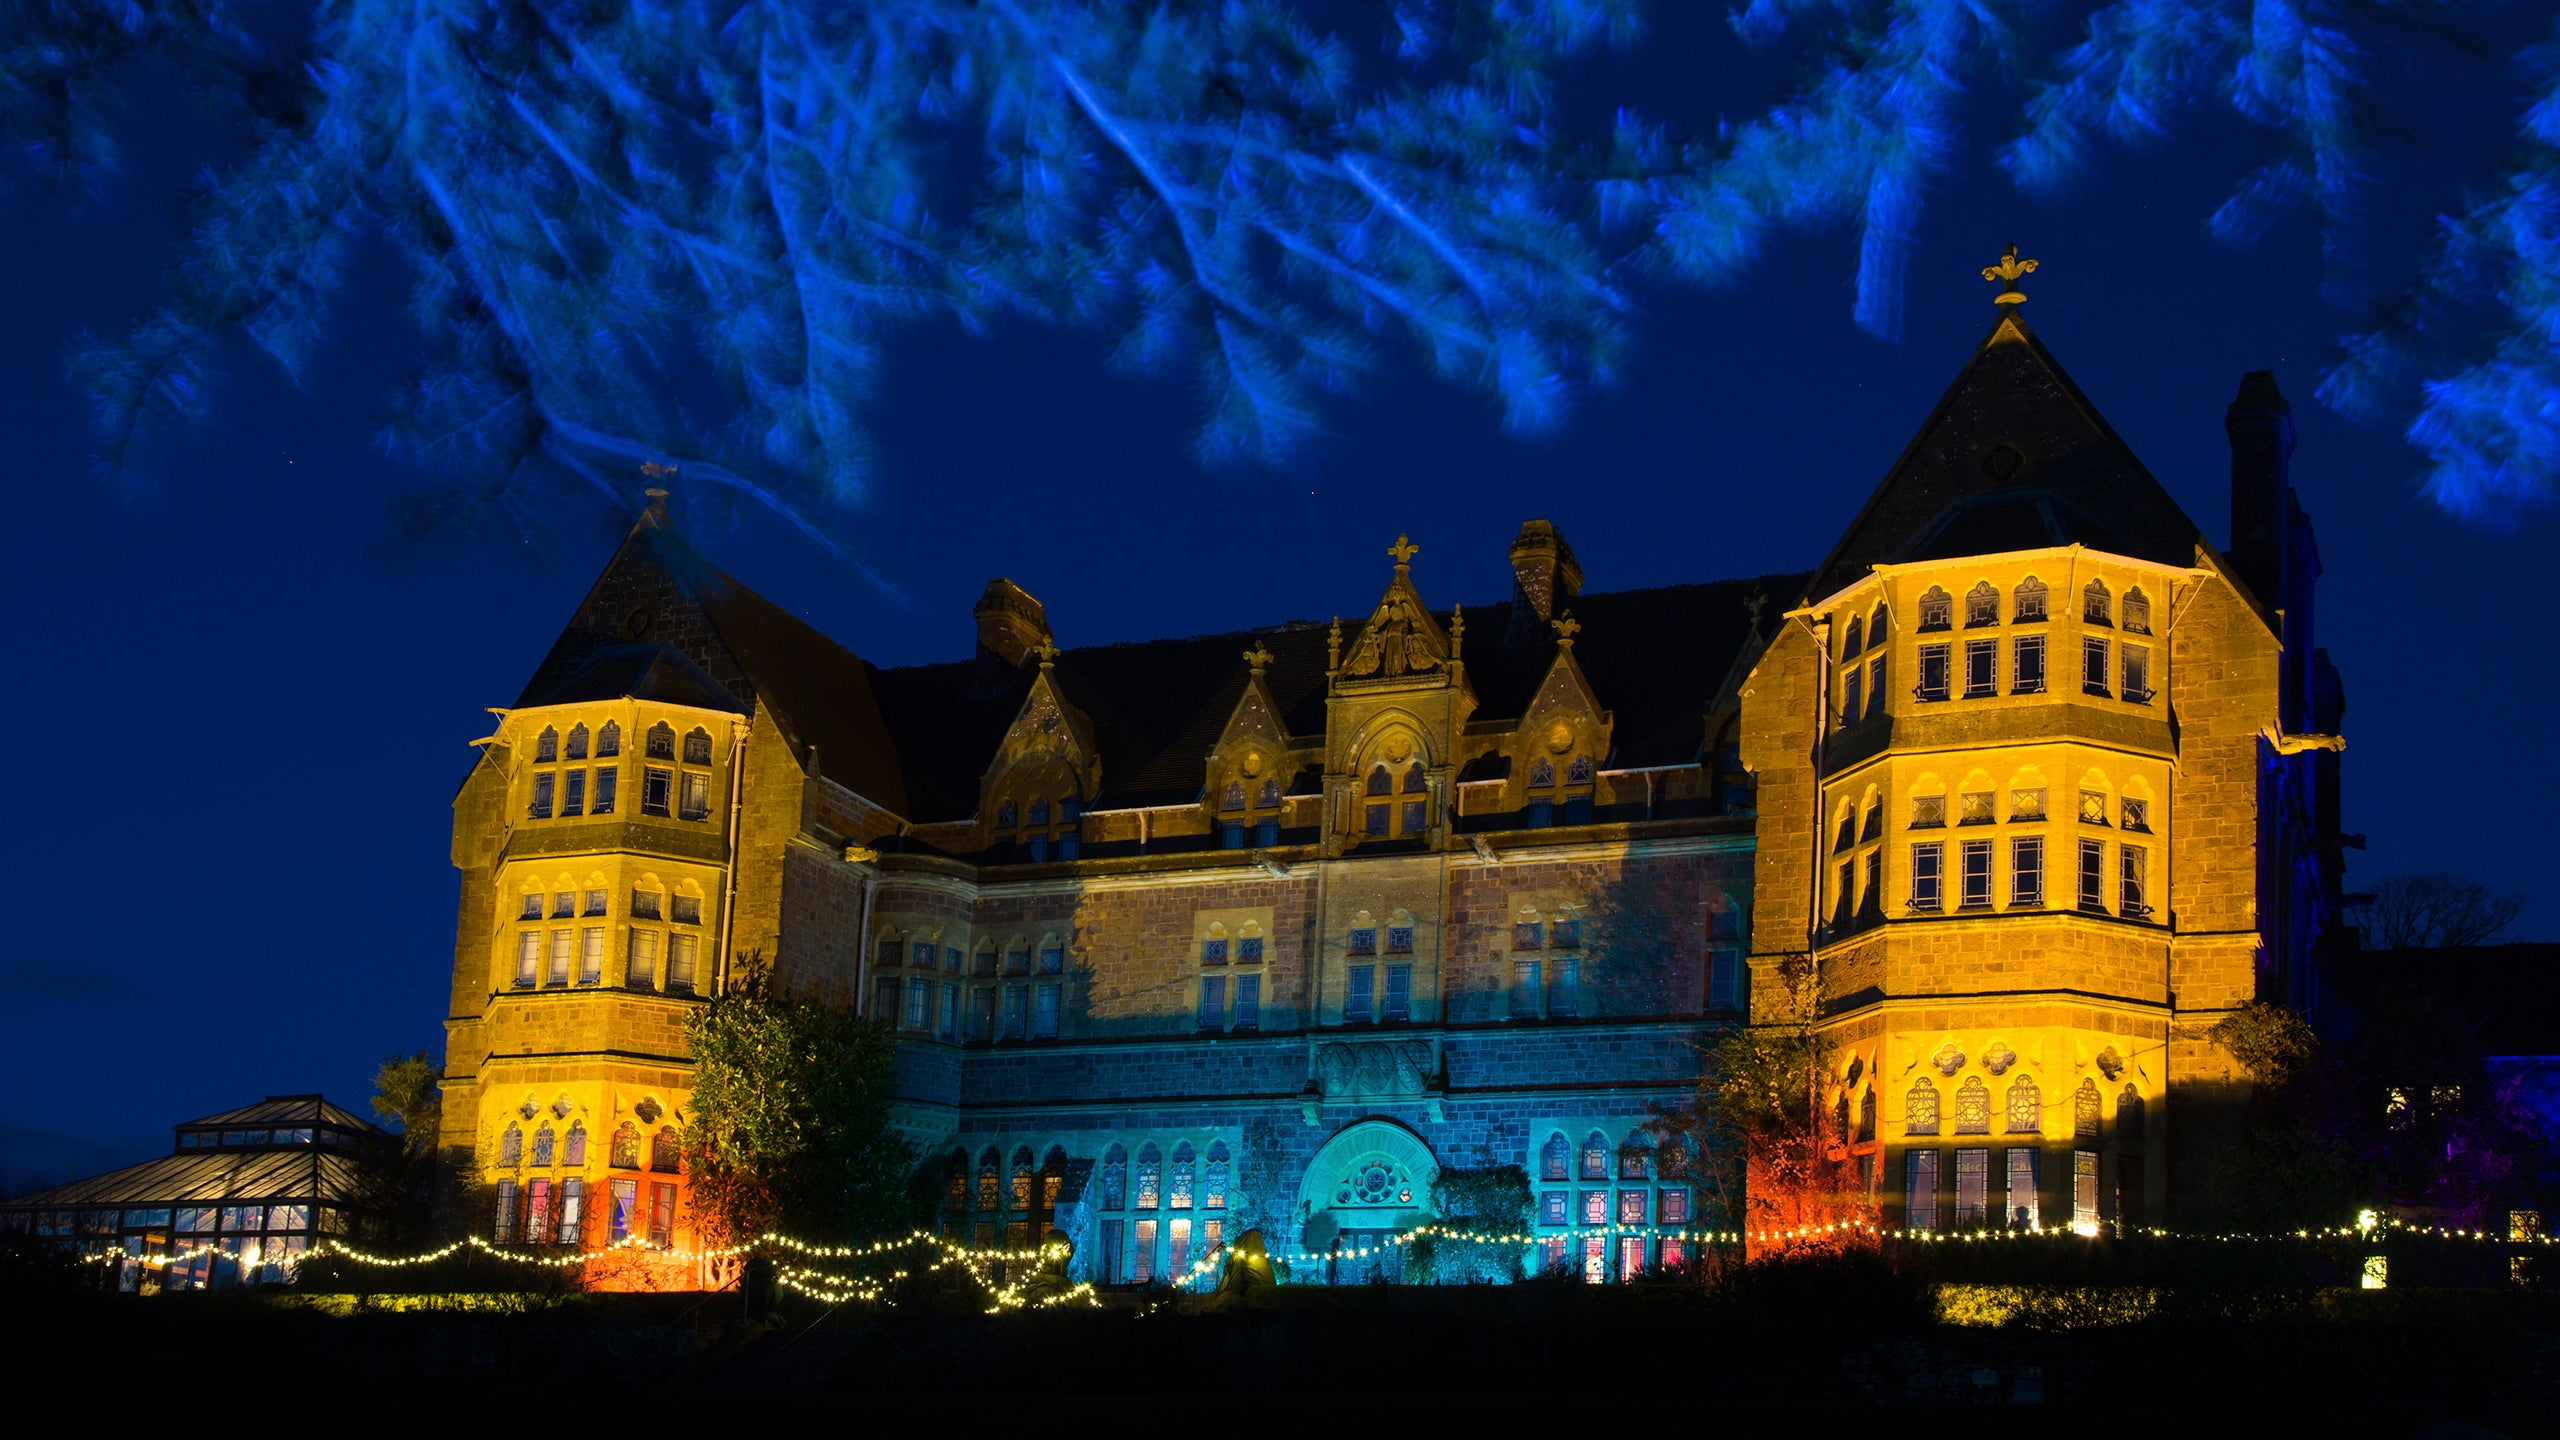 The gardens and house illuminated with lights for Christmas at Knighthayes